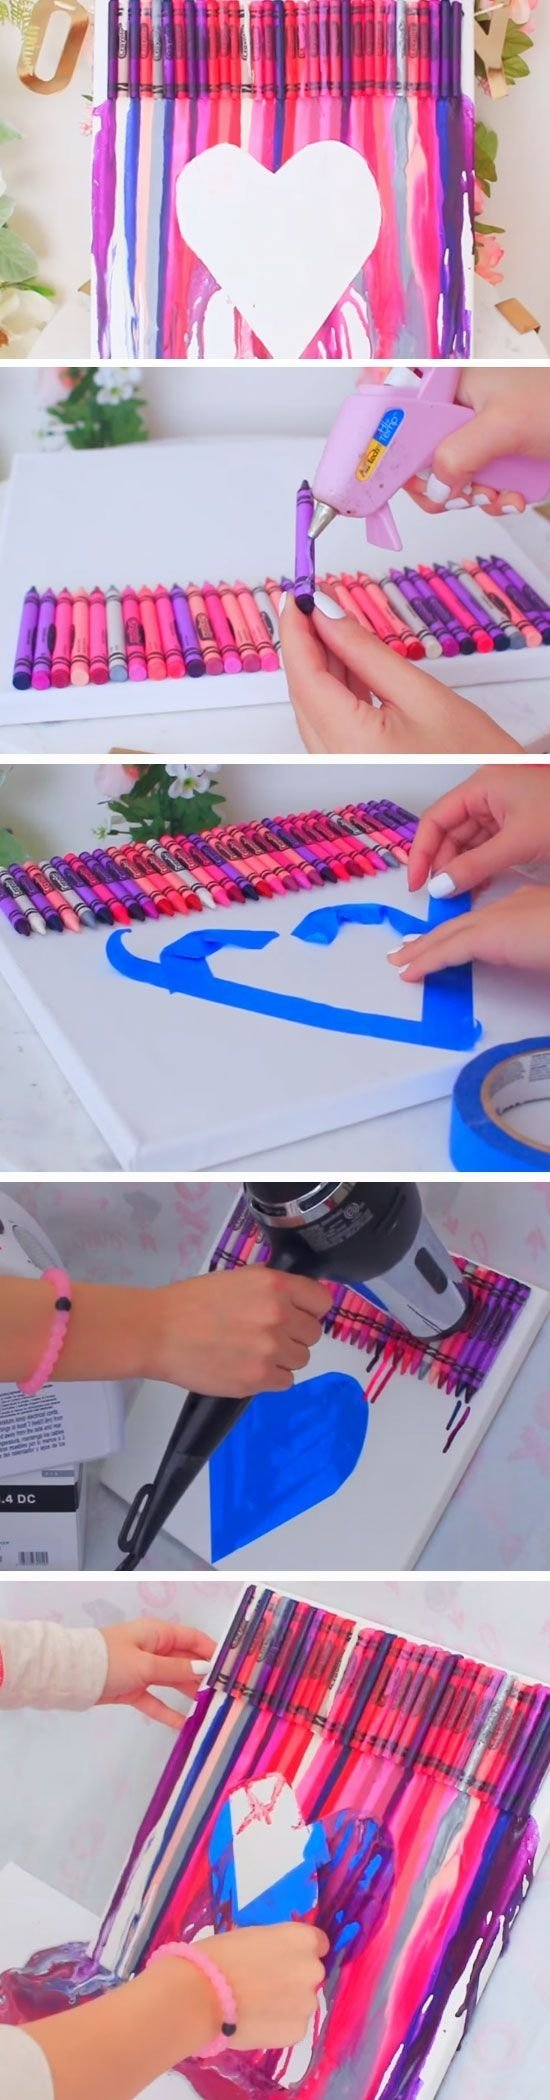 10 Fabulous Homemade Birthday Gift Ideas For Boyfriend 32 Diy Valentines Crafts